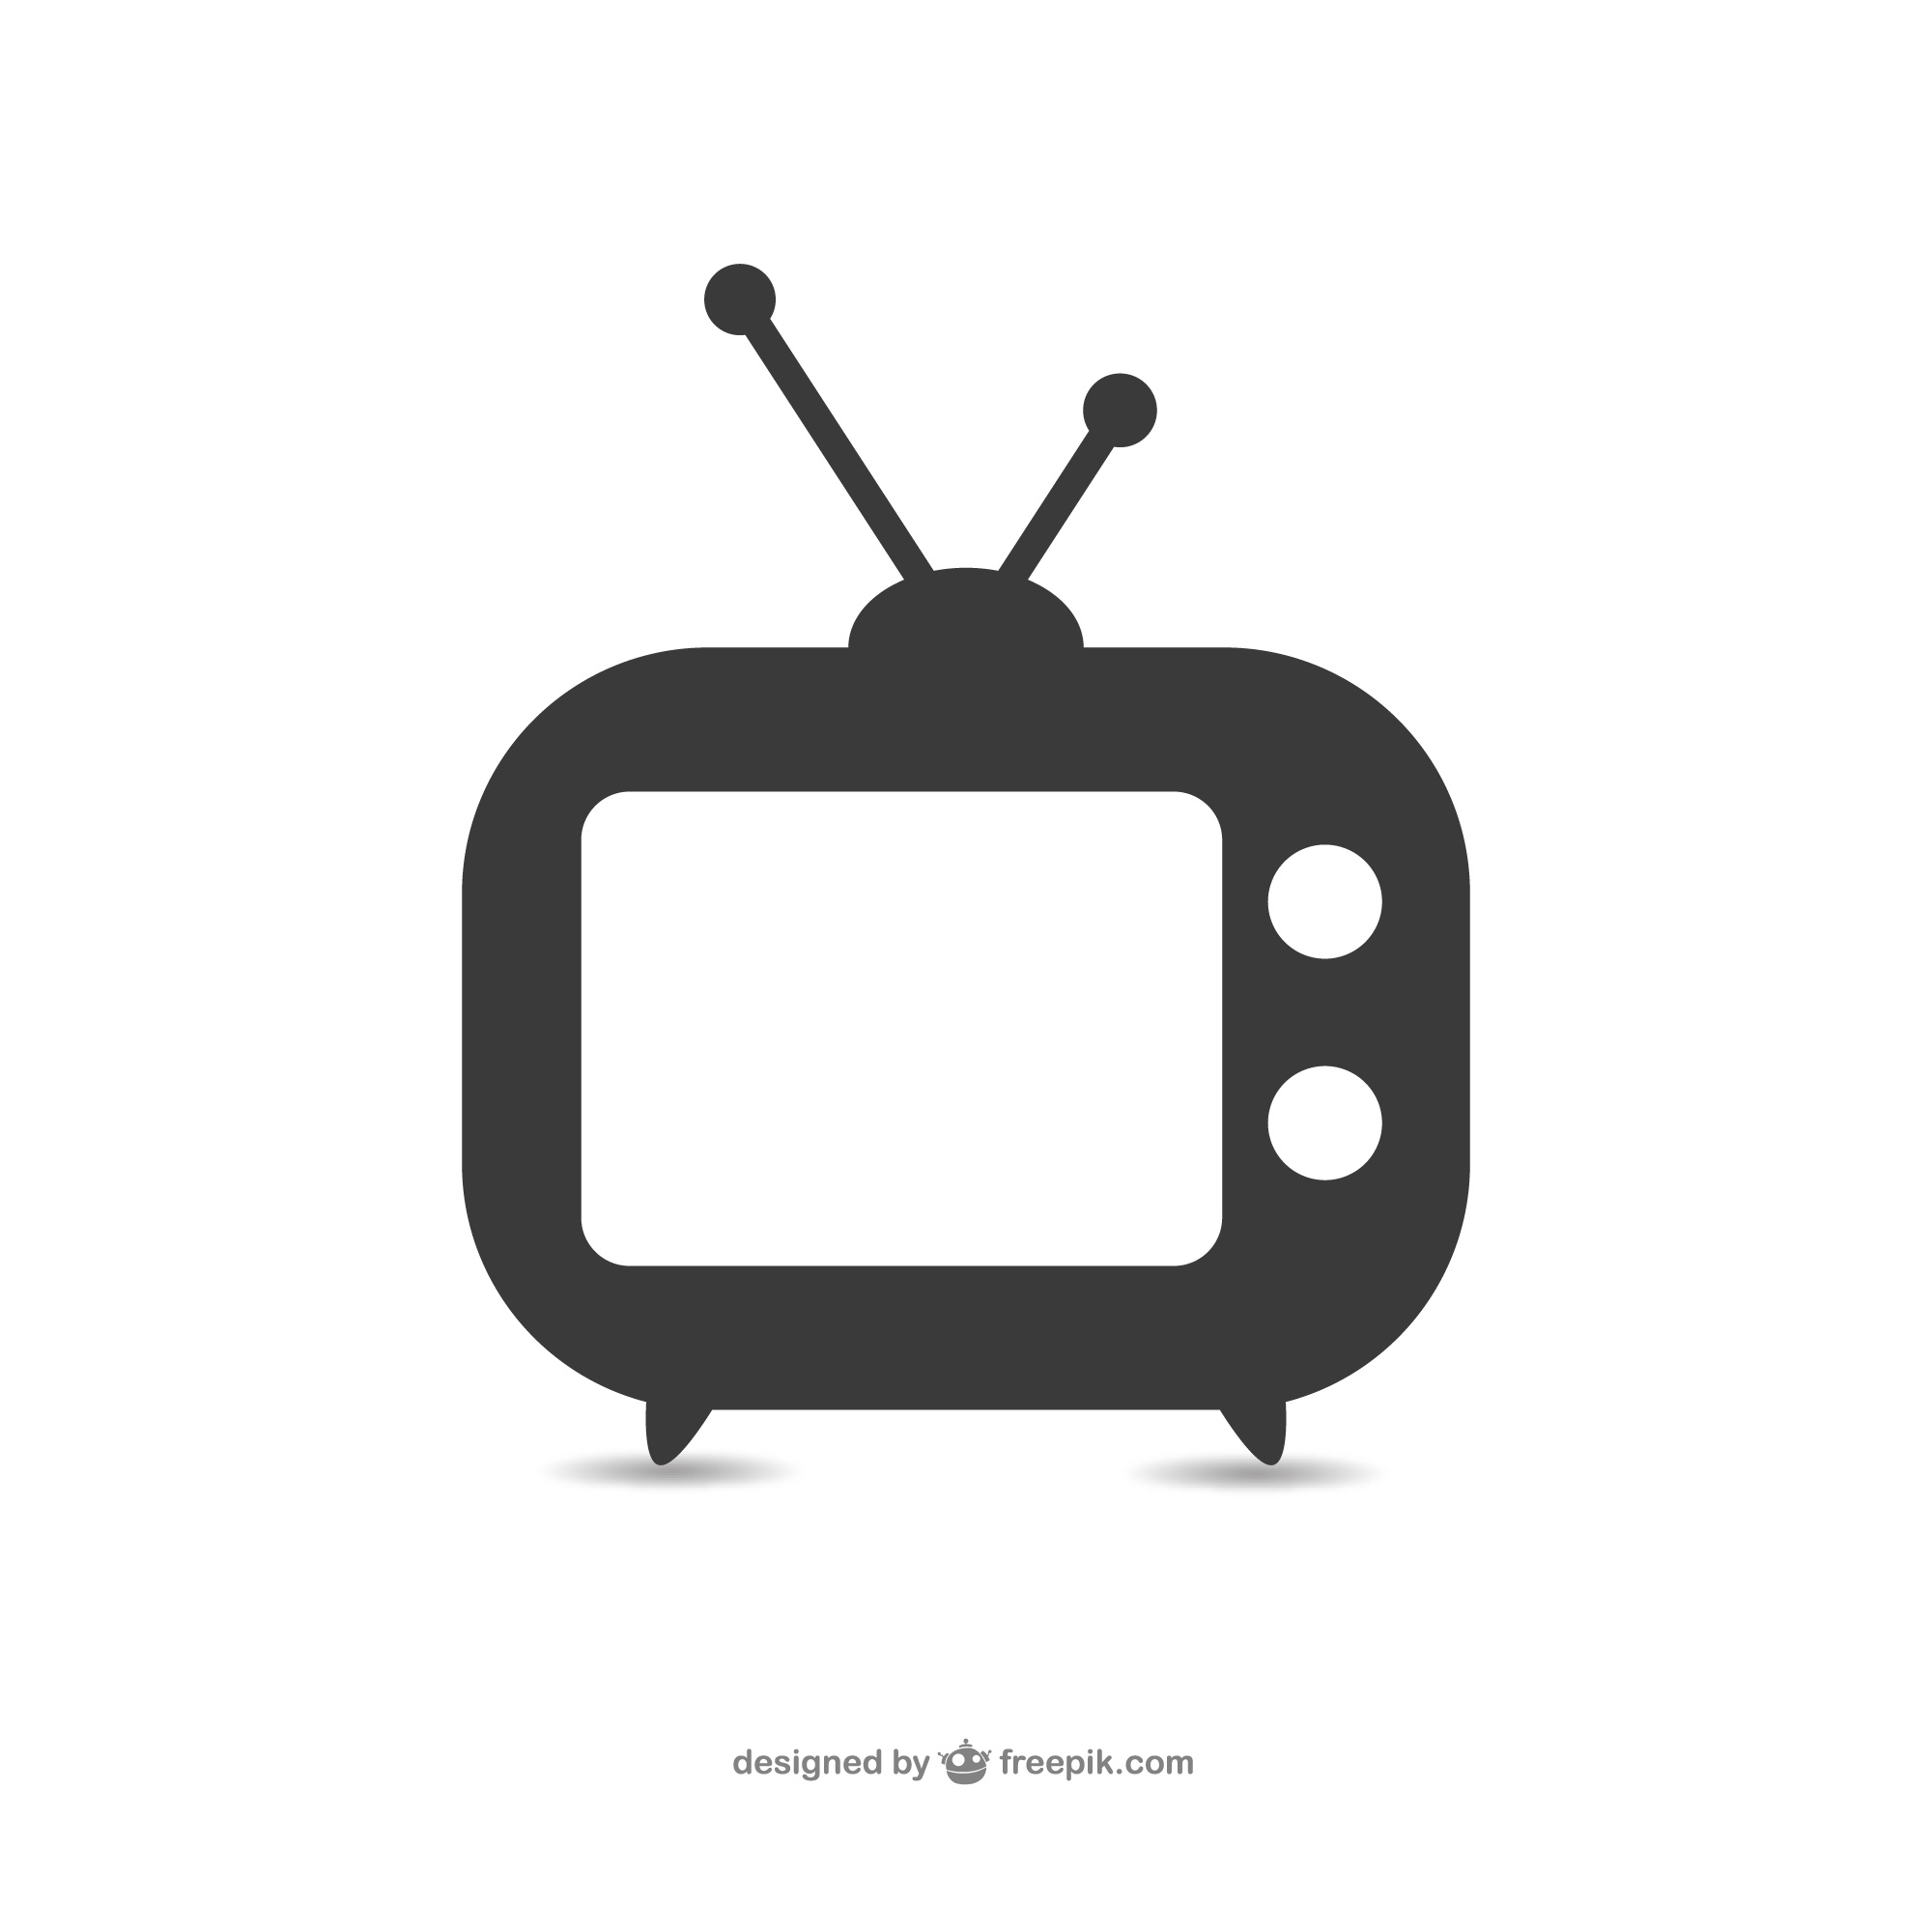 Old television set icon